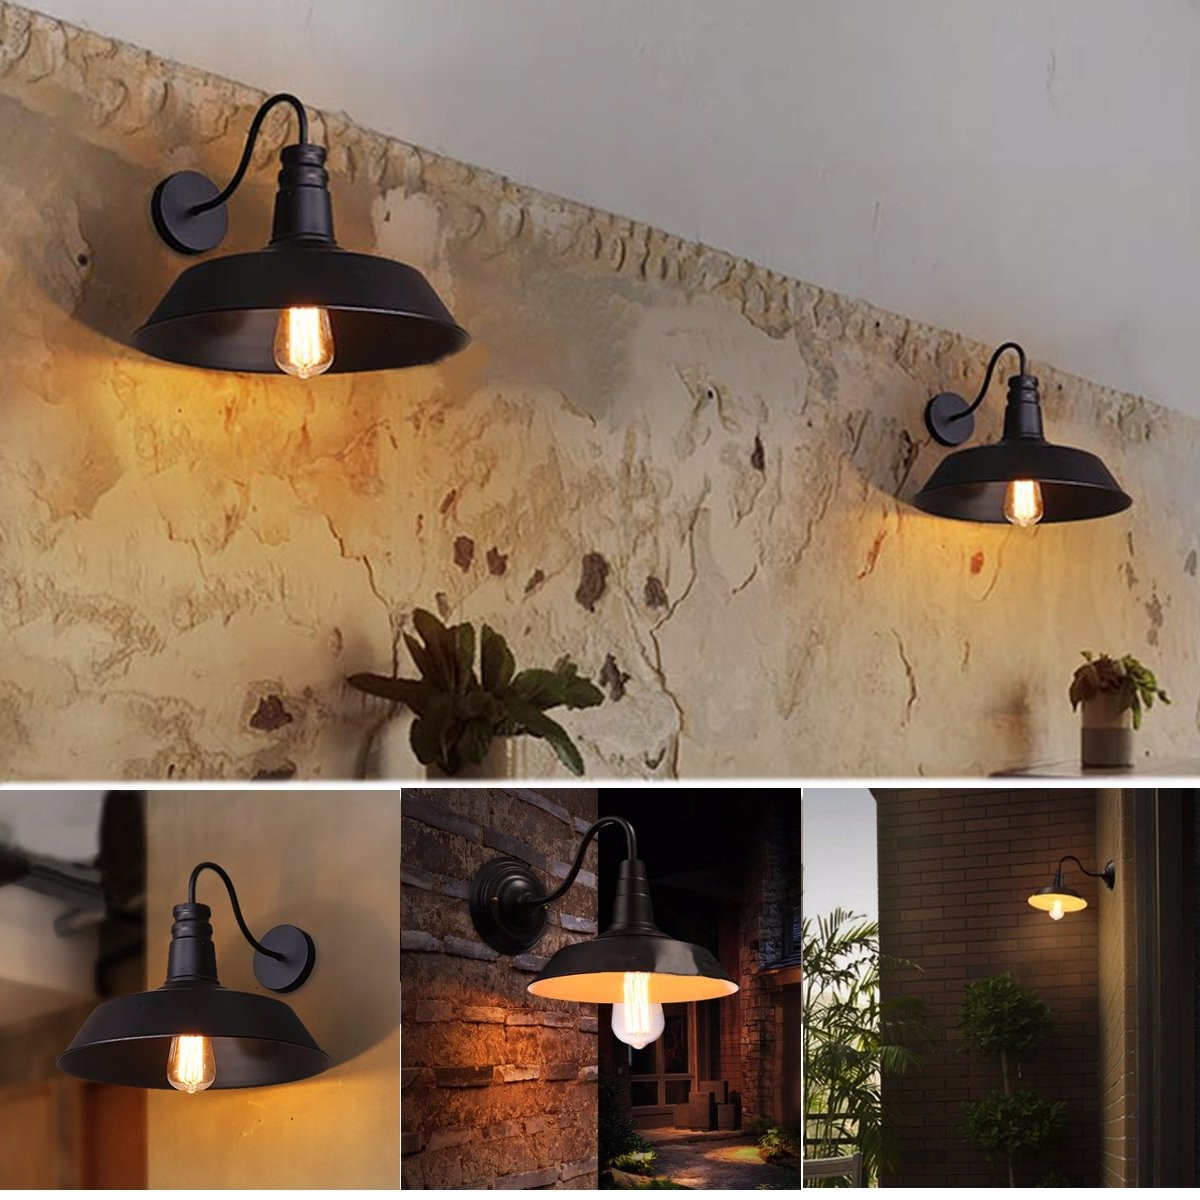 Retro Vintage Industrial Barn Style Light Wall Sconce Wall